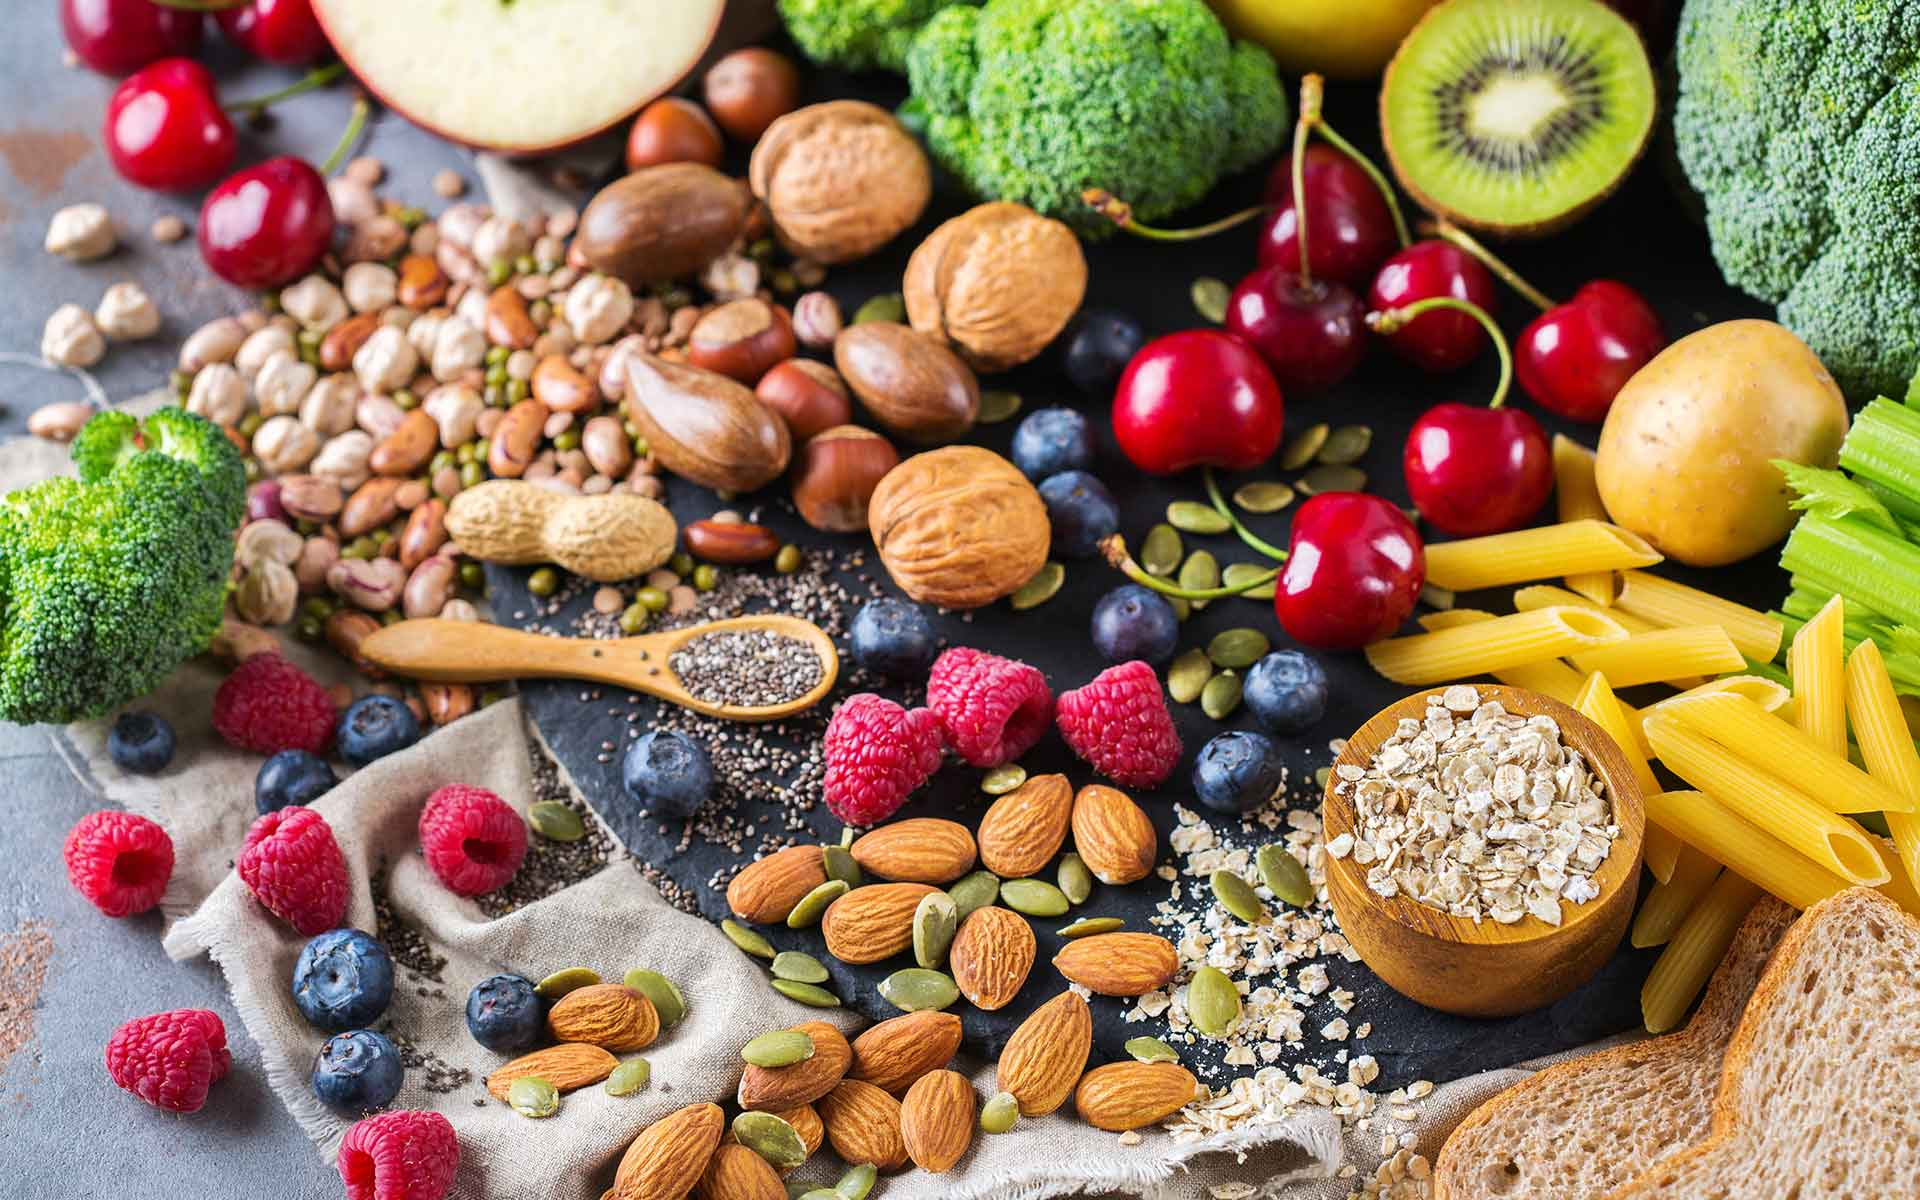 Whole Food - Fruit, Vegetables and Nuts